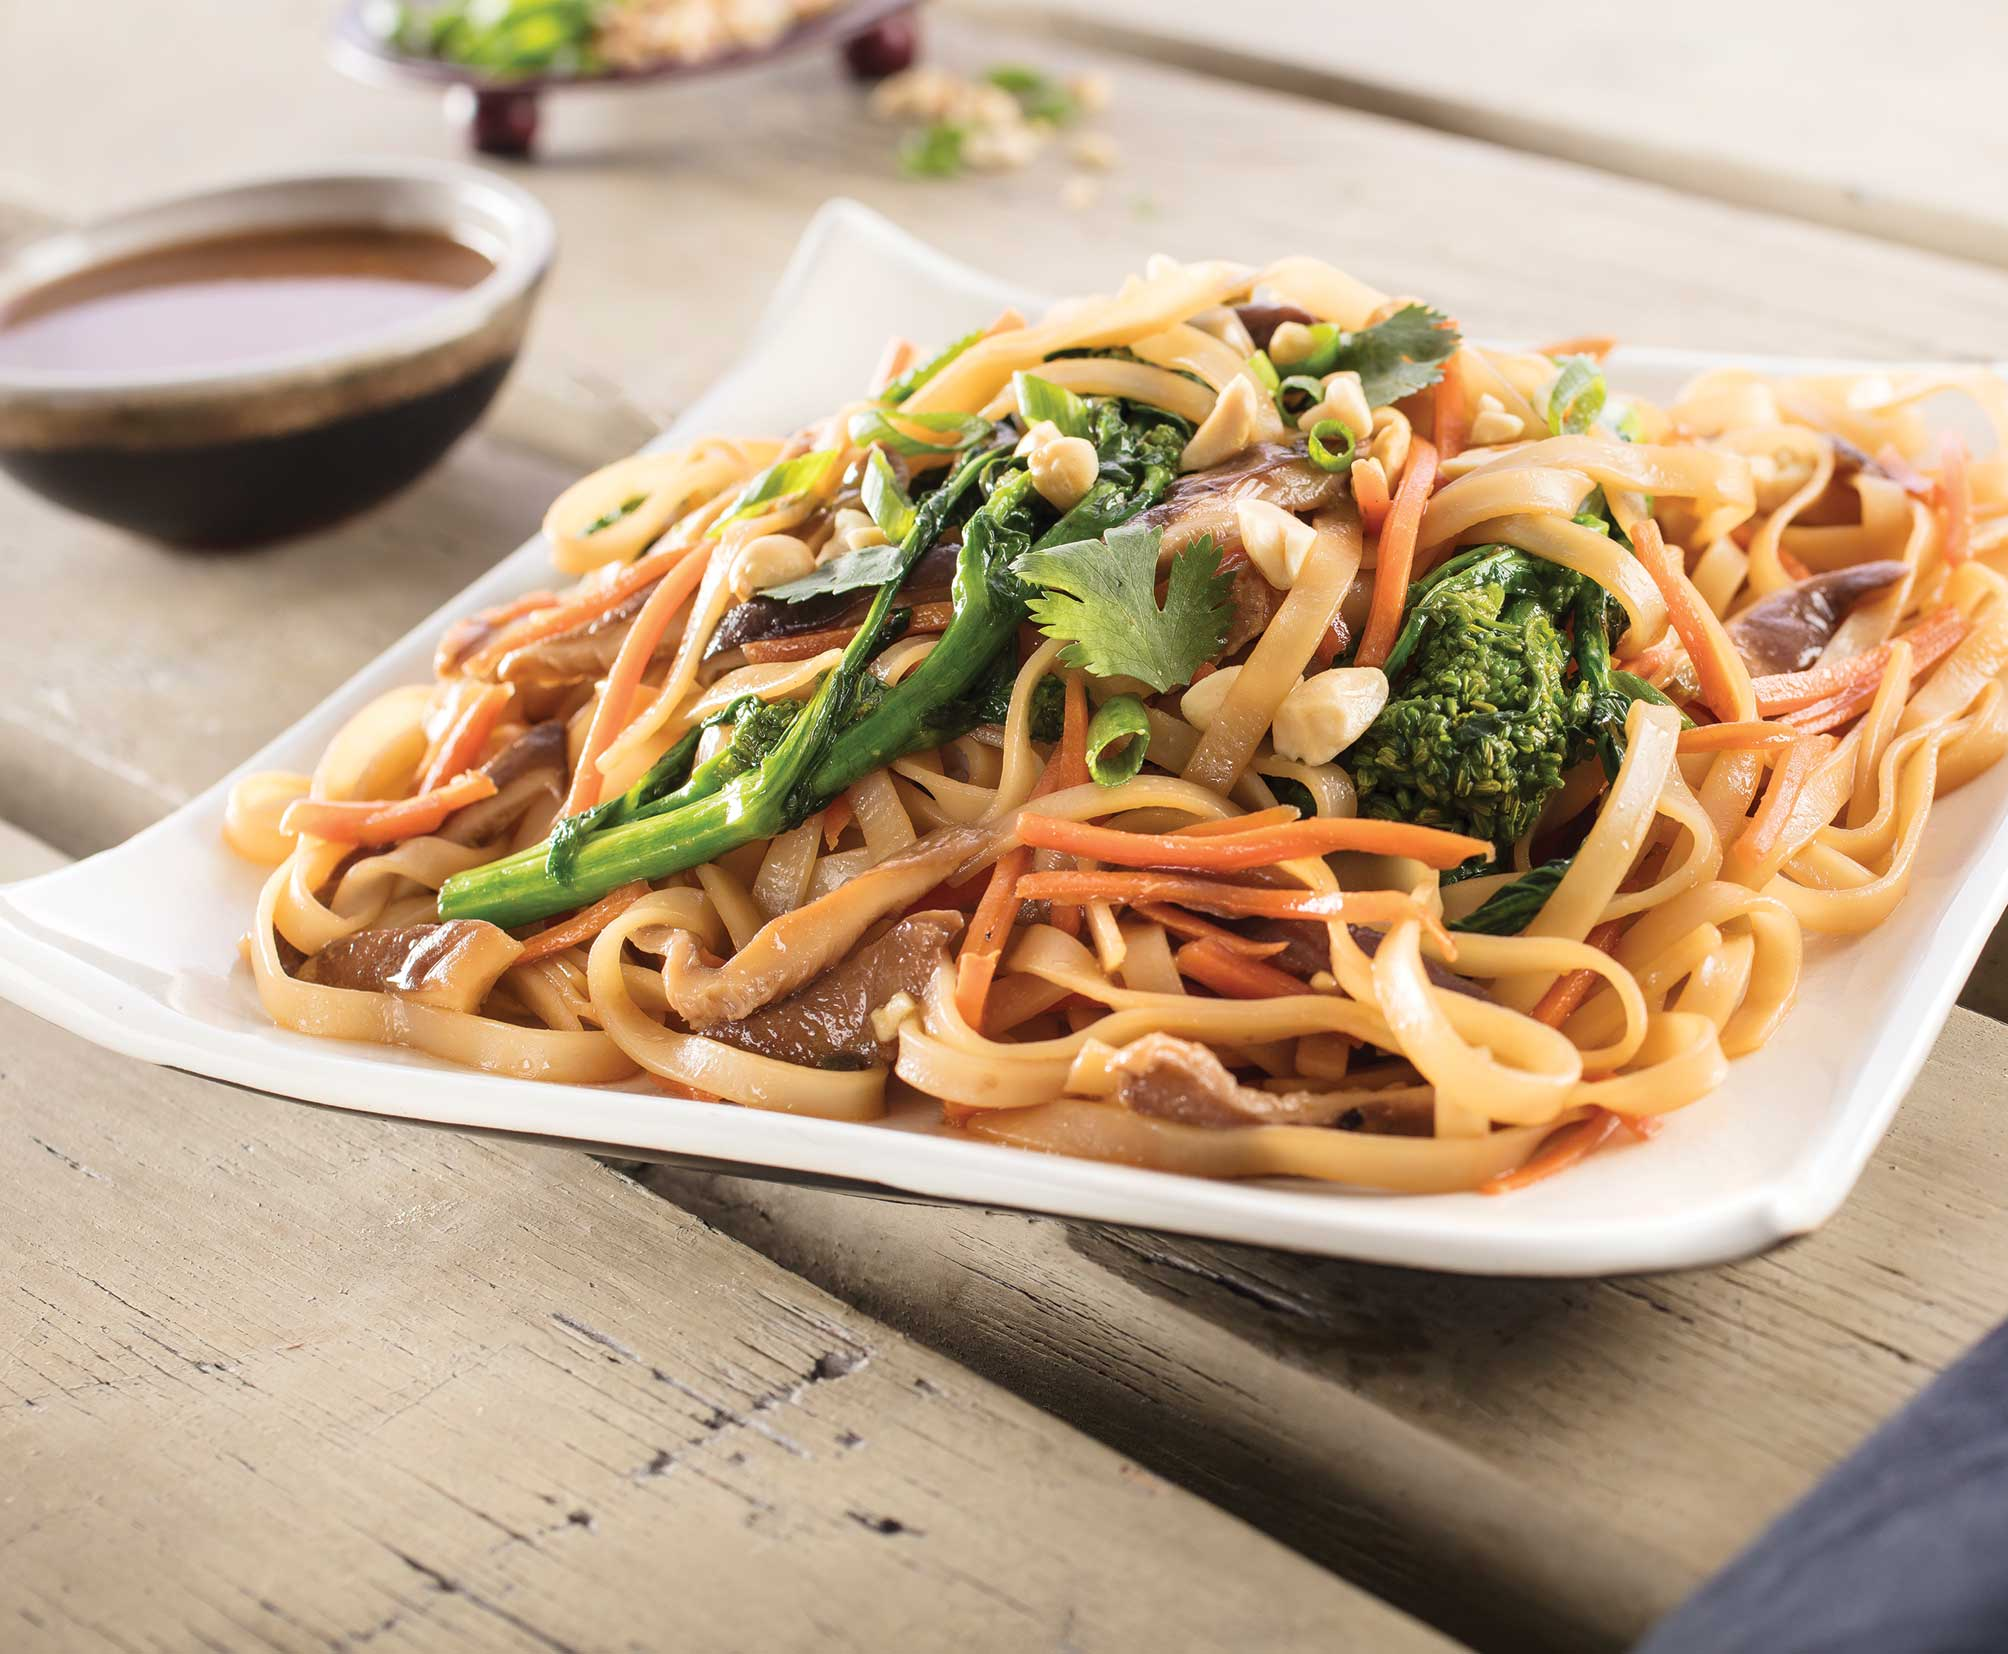 Noodle Vegetable StirFry